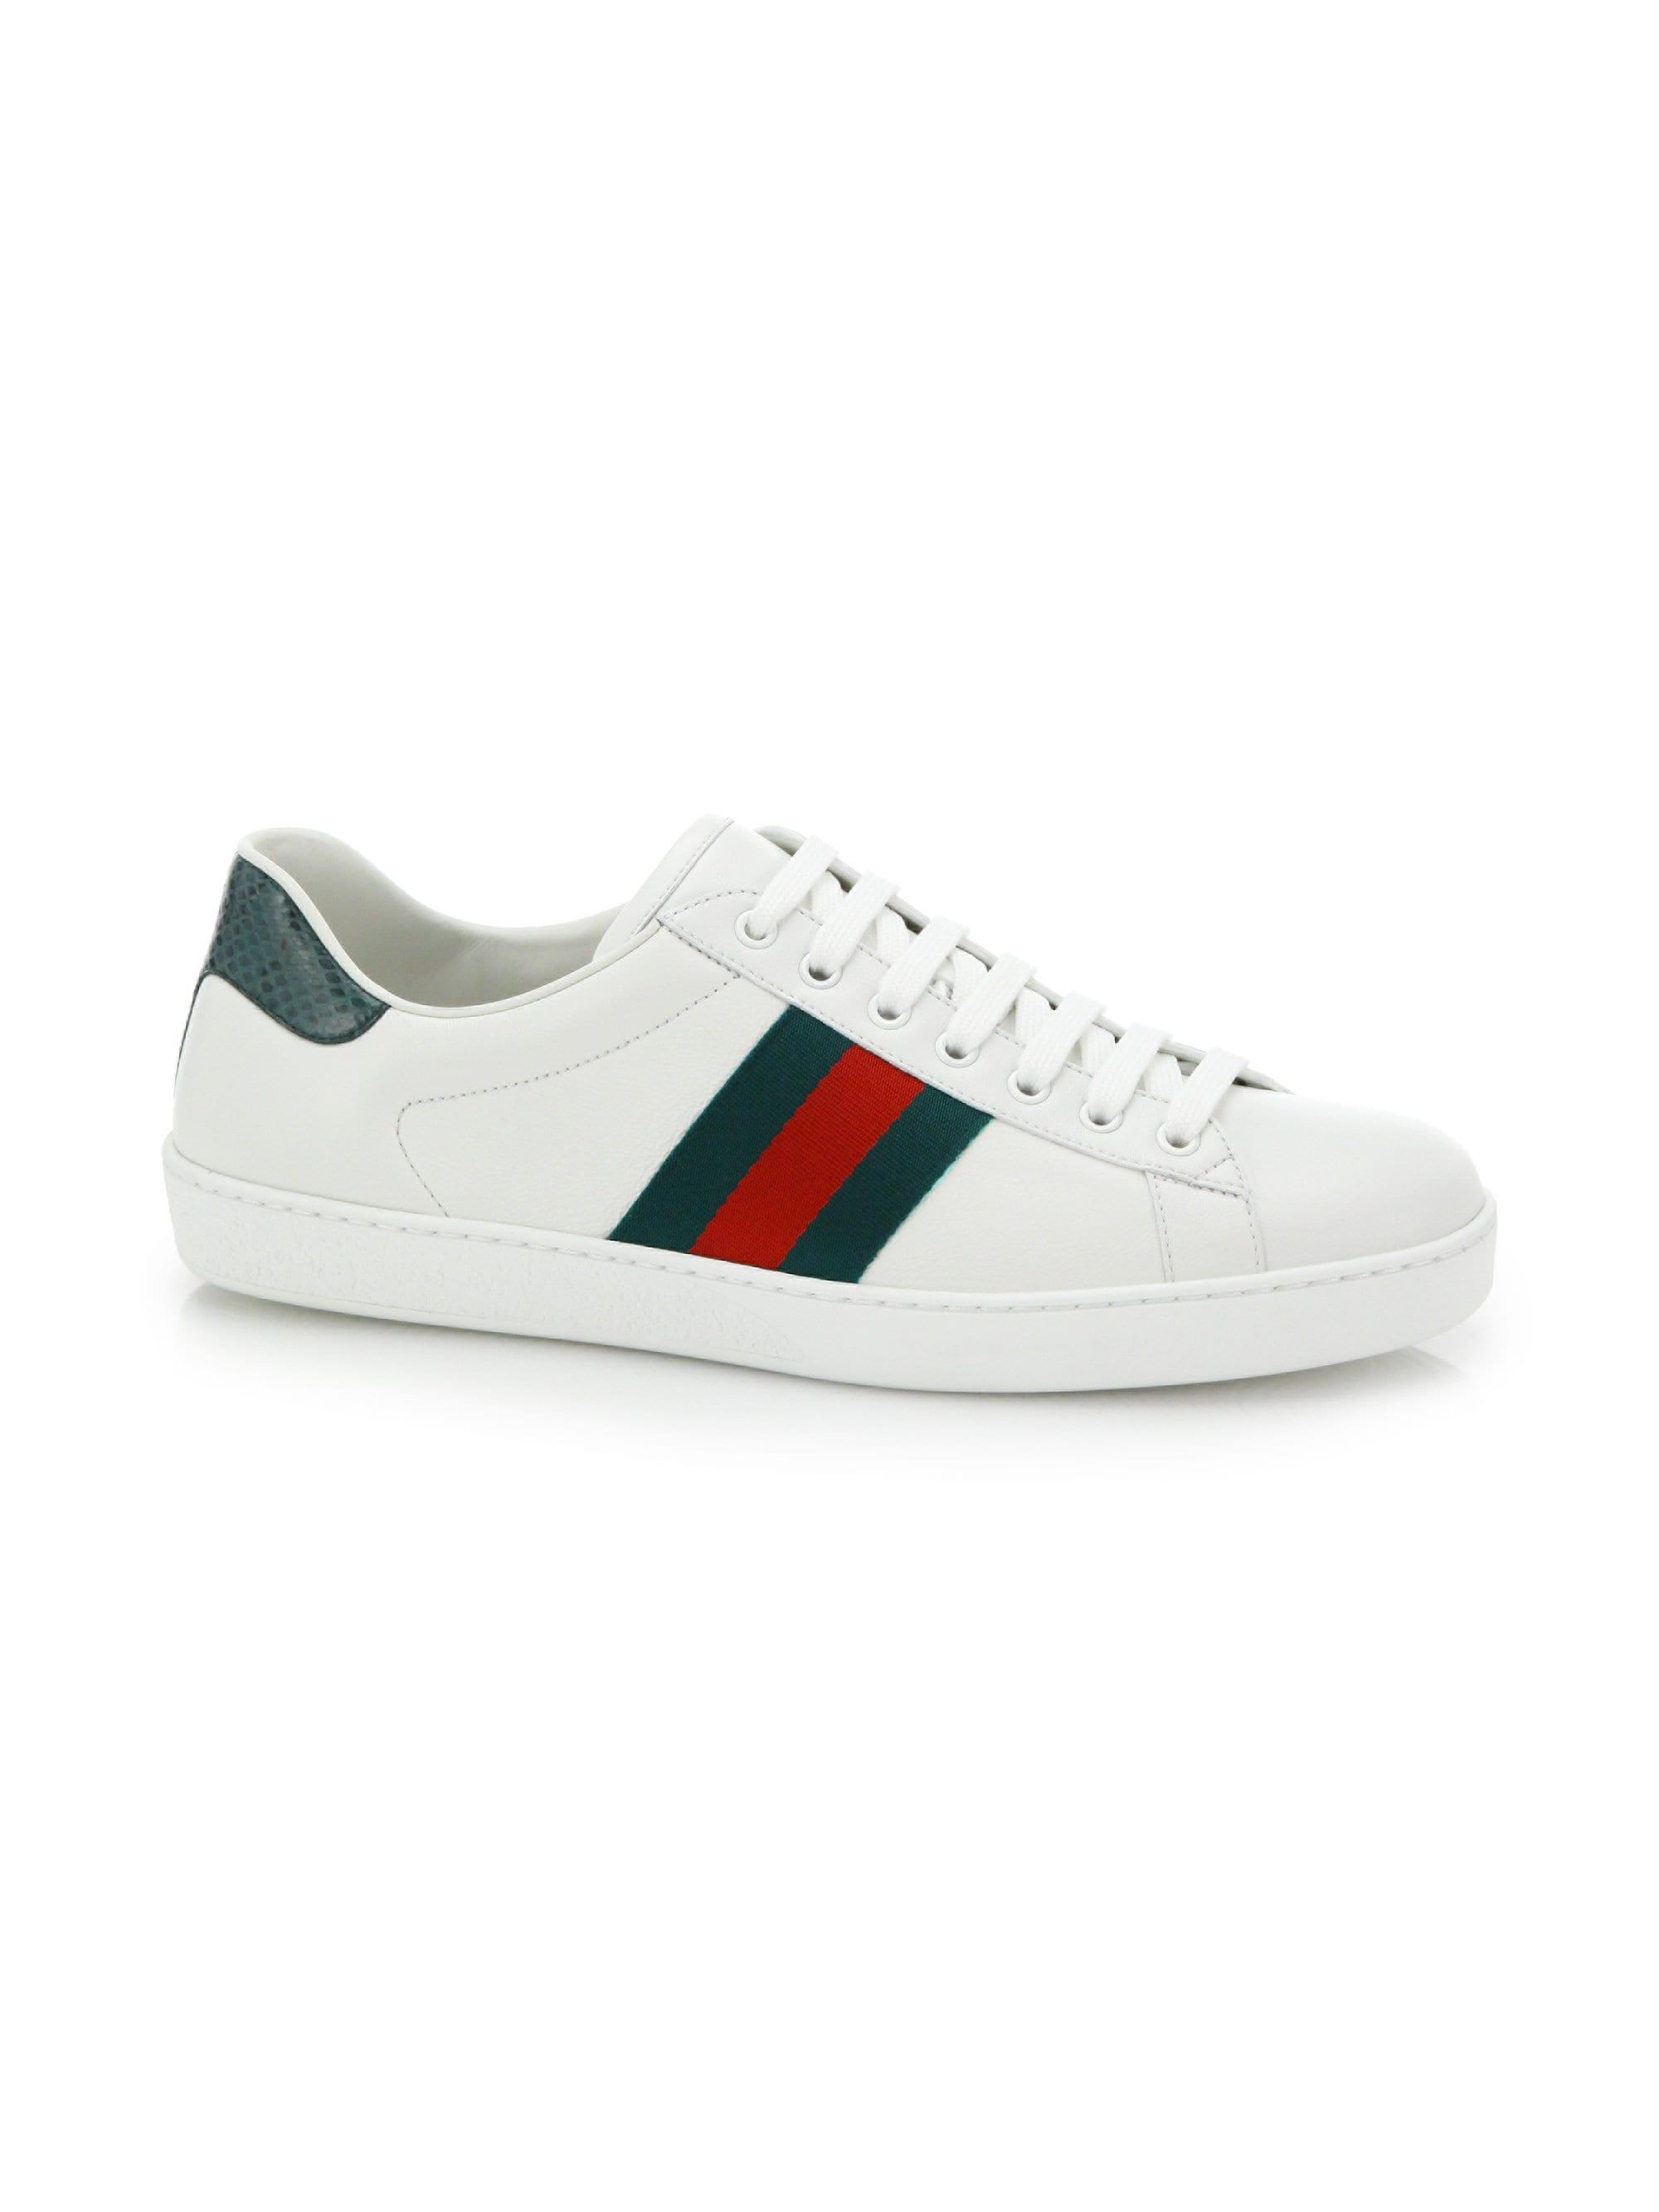 0cd0d1b2e36 Lyst - Gucci Croc-detail Ace Leather Sneakers in White for Men